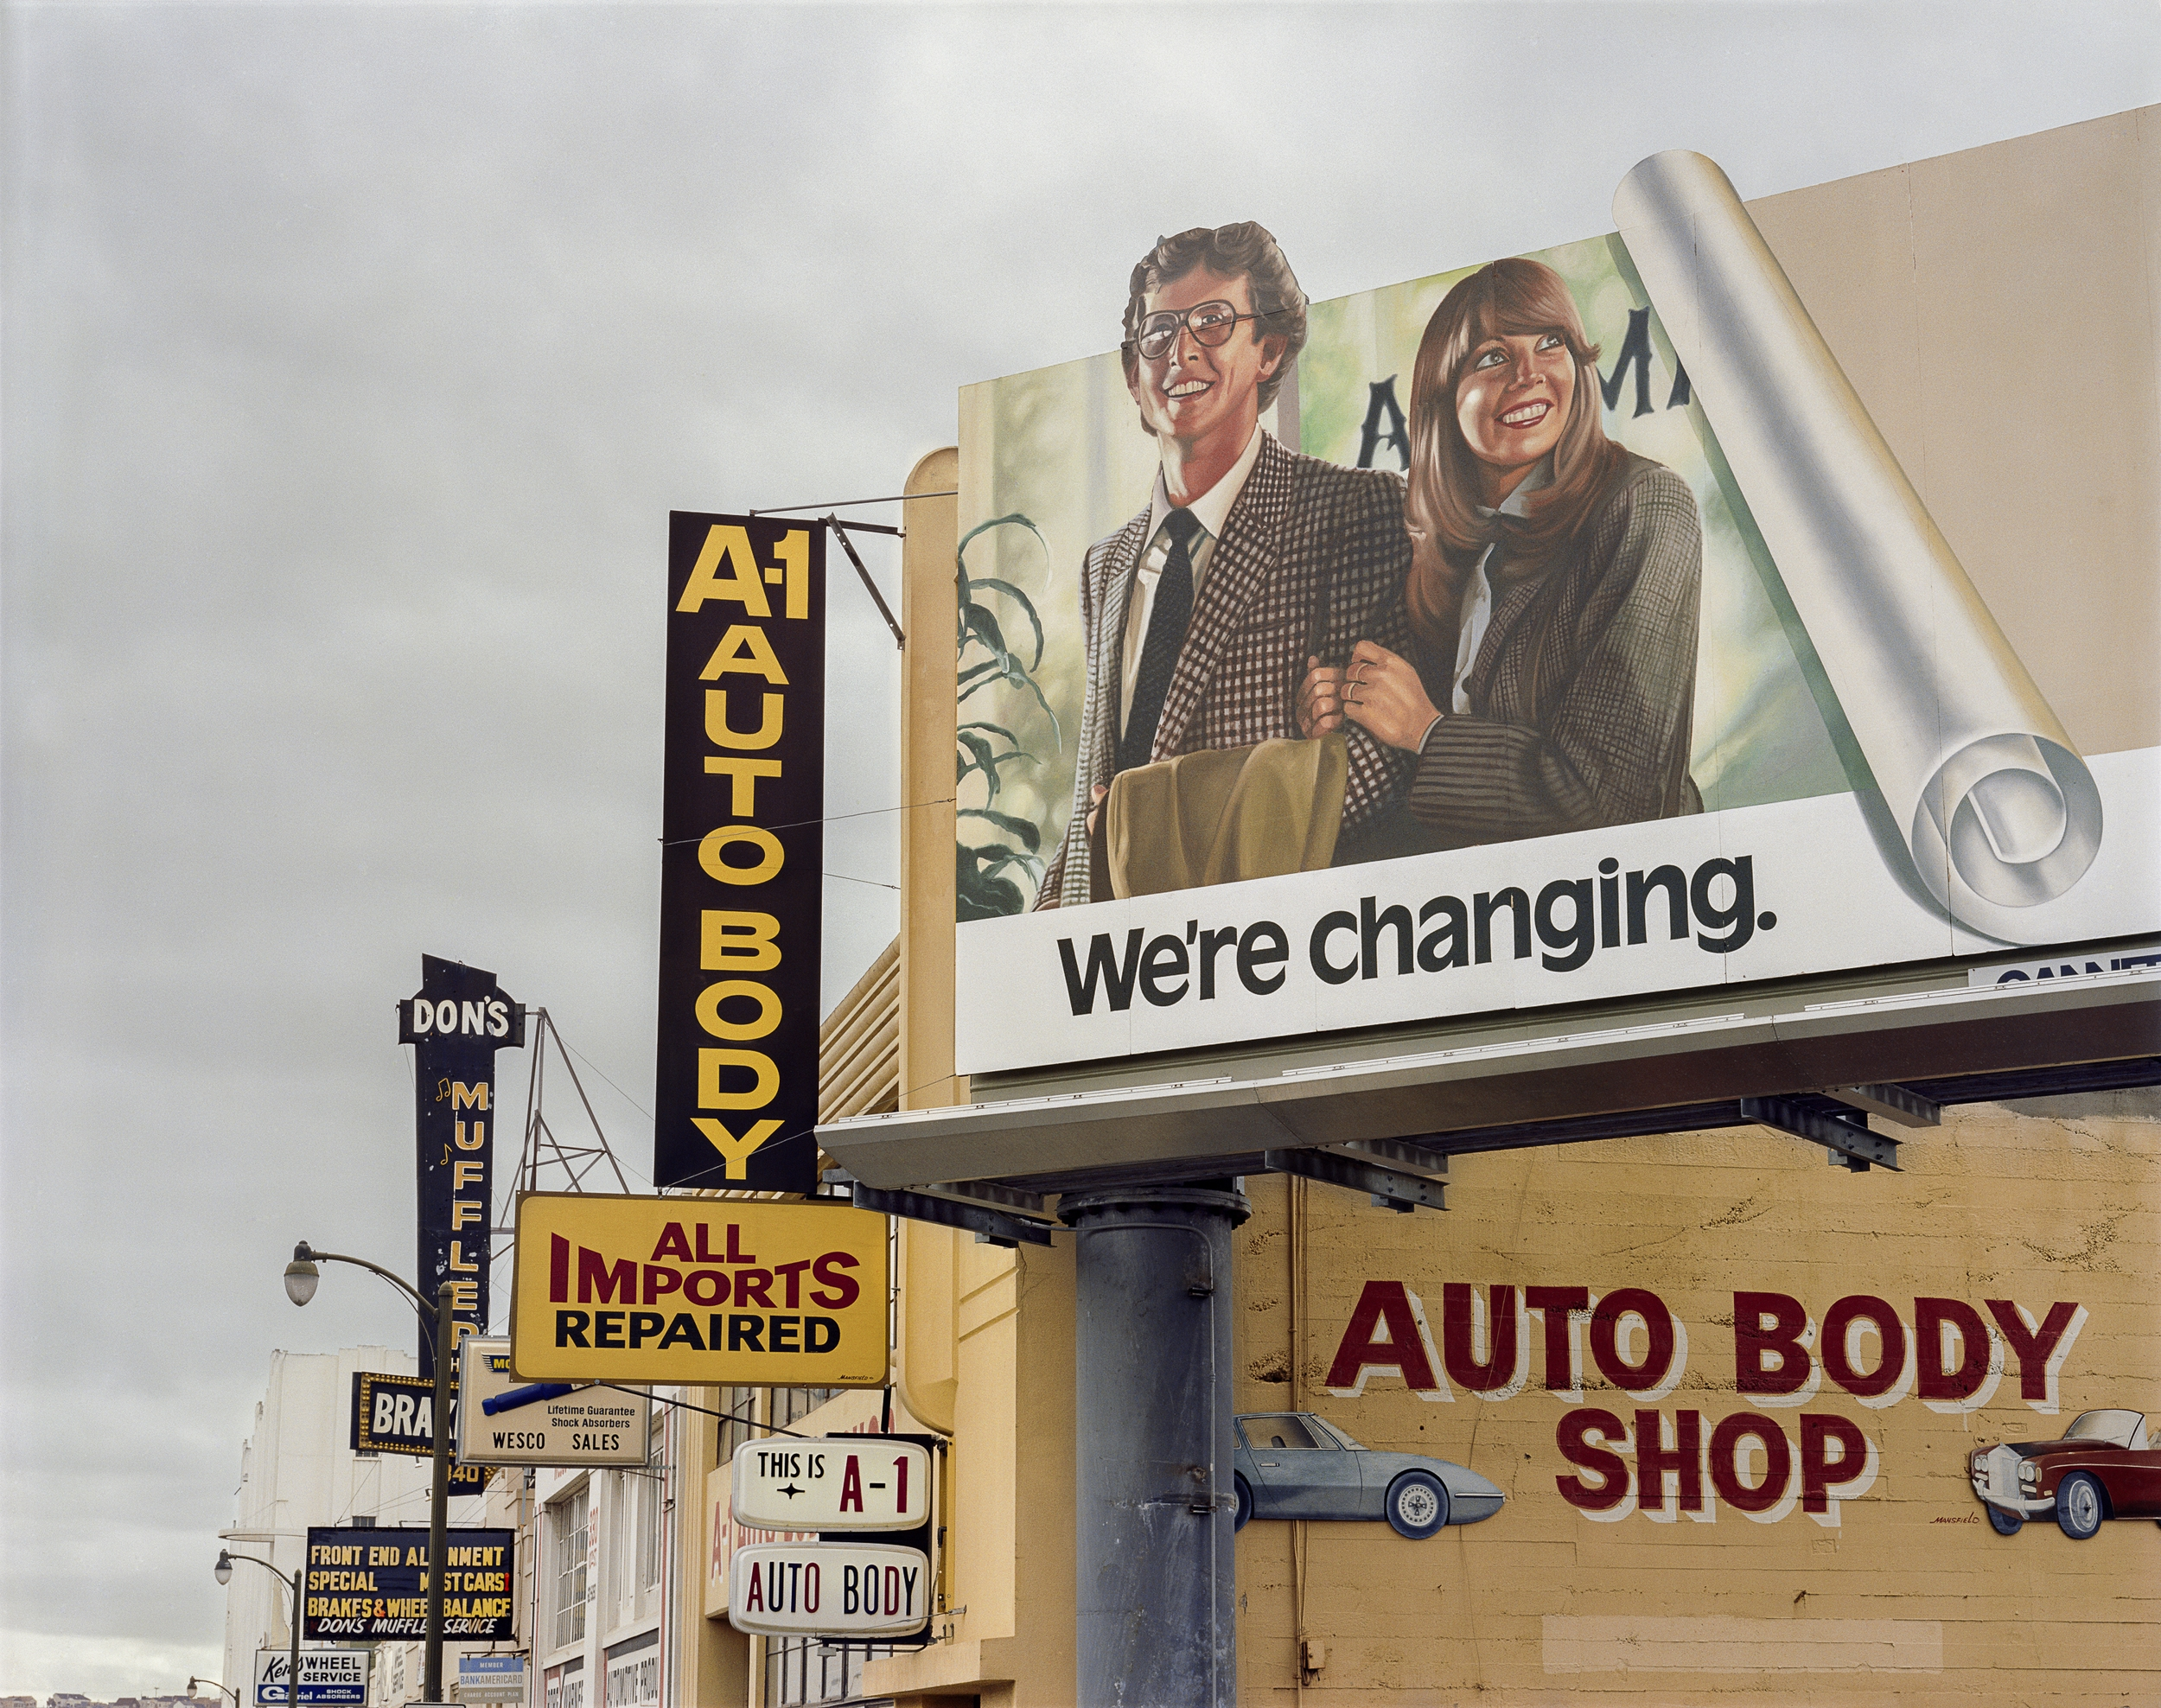 JANET DELANEY 10th at Folsom Street, 1982 Archival Pigment Print, 2016  AVAILABLE SIZES 16 x 20 inches, edition of 5 20 x 24 inches, edition of 2 30 x 40 inches, edition of 2